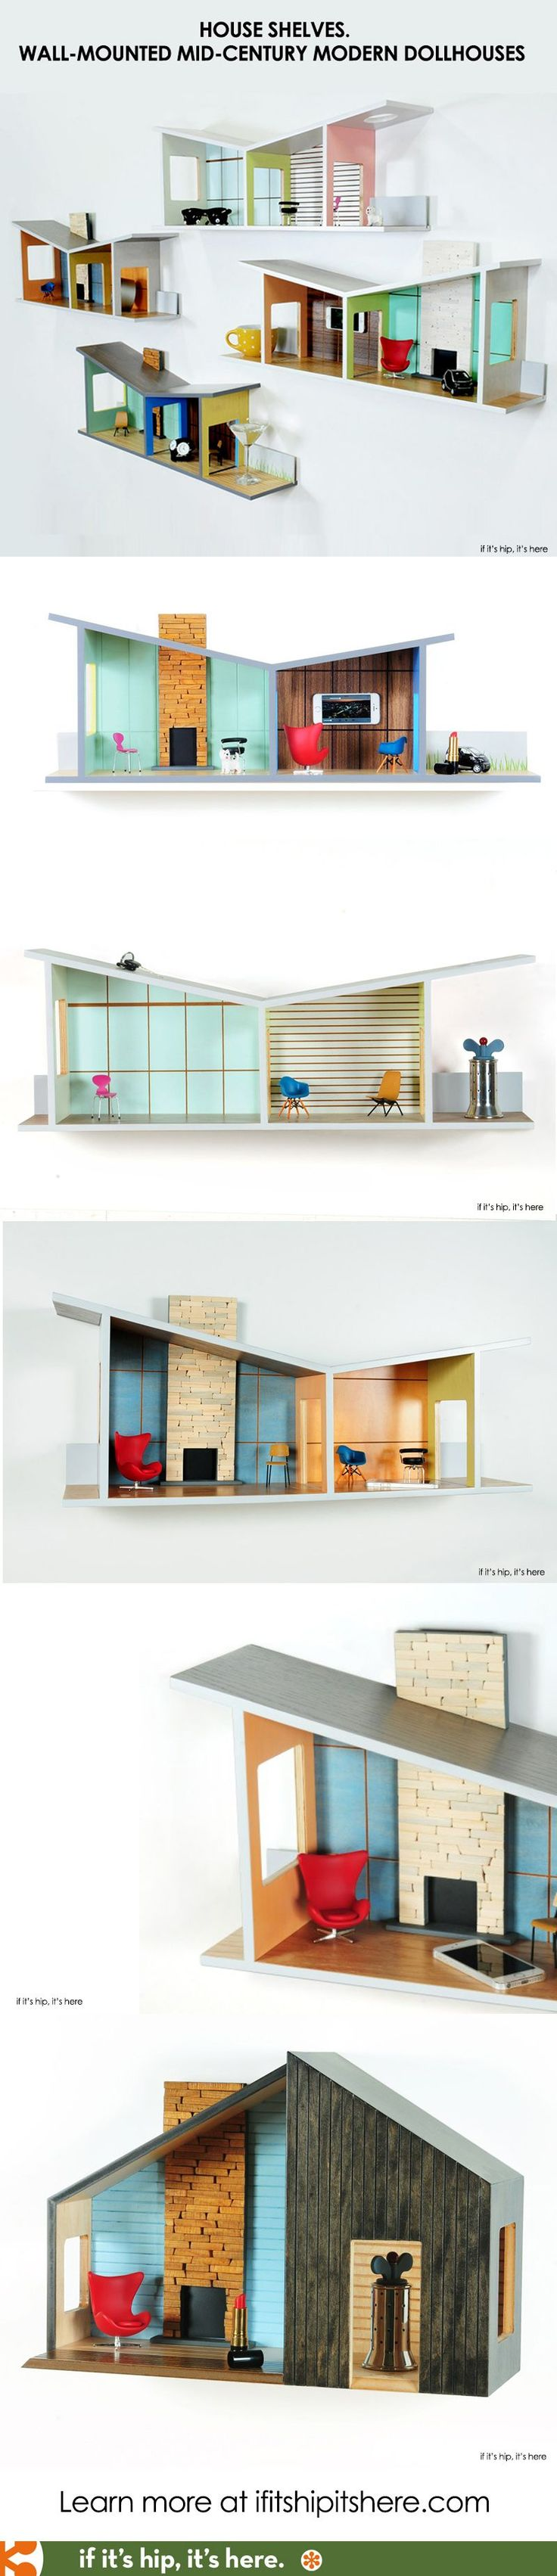 best ideas for the house images on pinterest furniture my